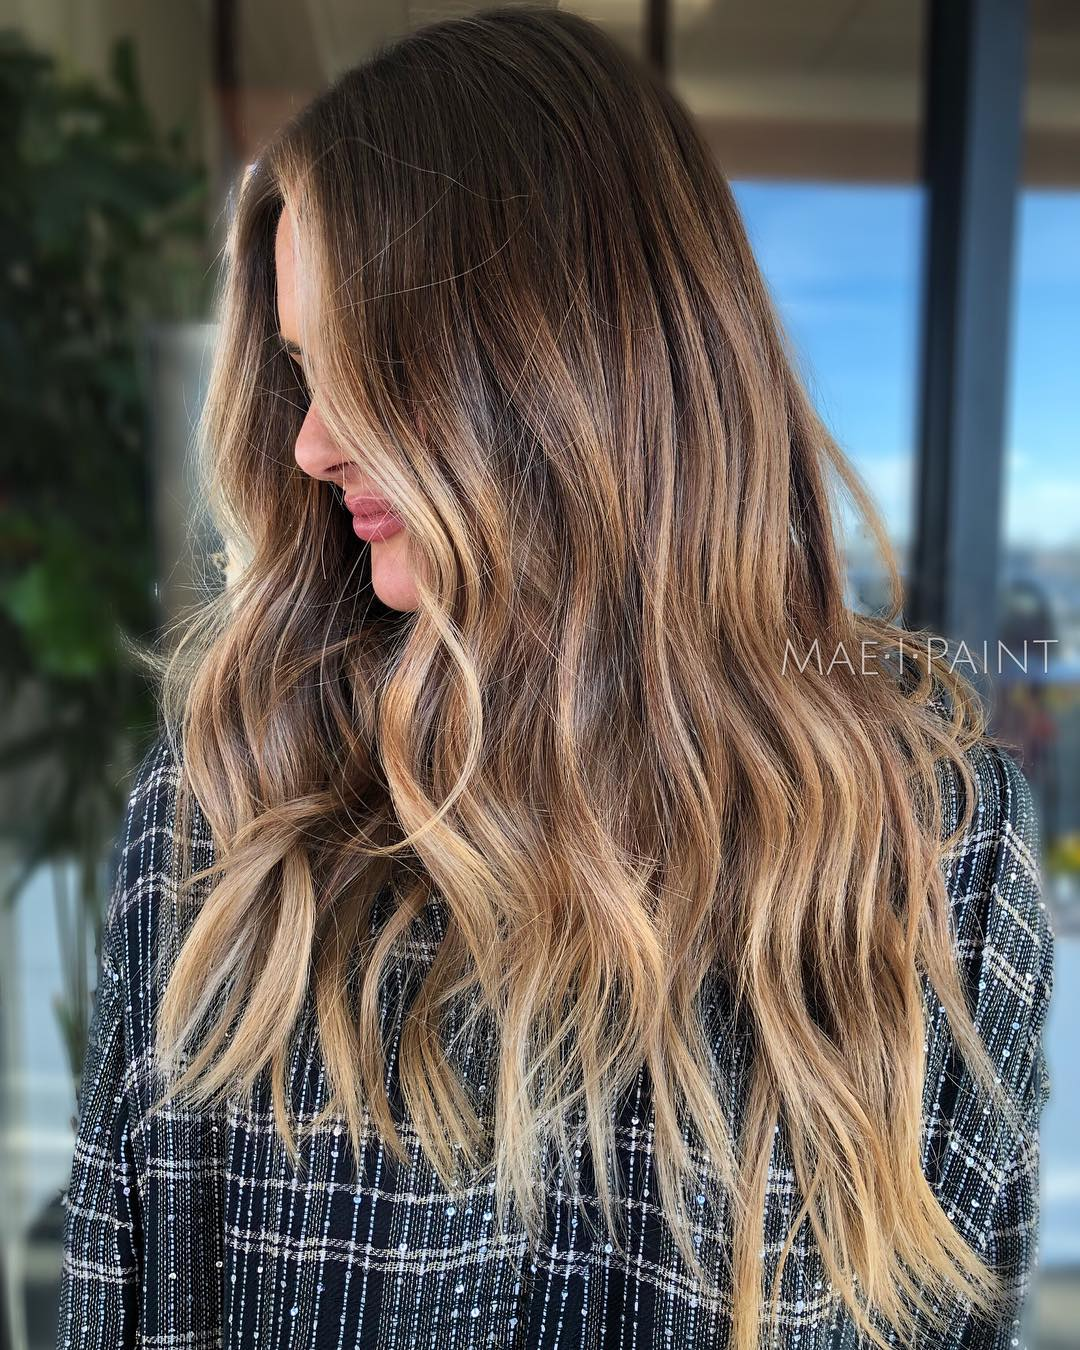 50 Light Brown Hair Color Ideas with Highlights and Lowlights